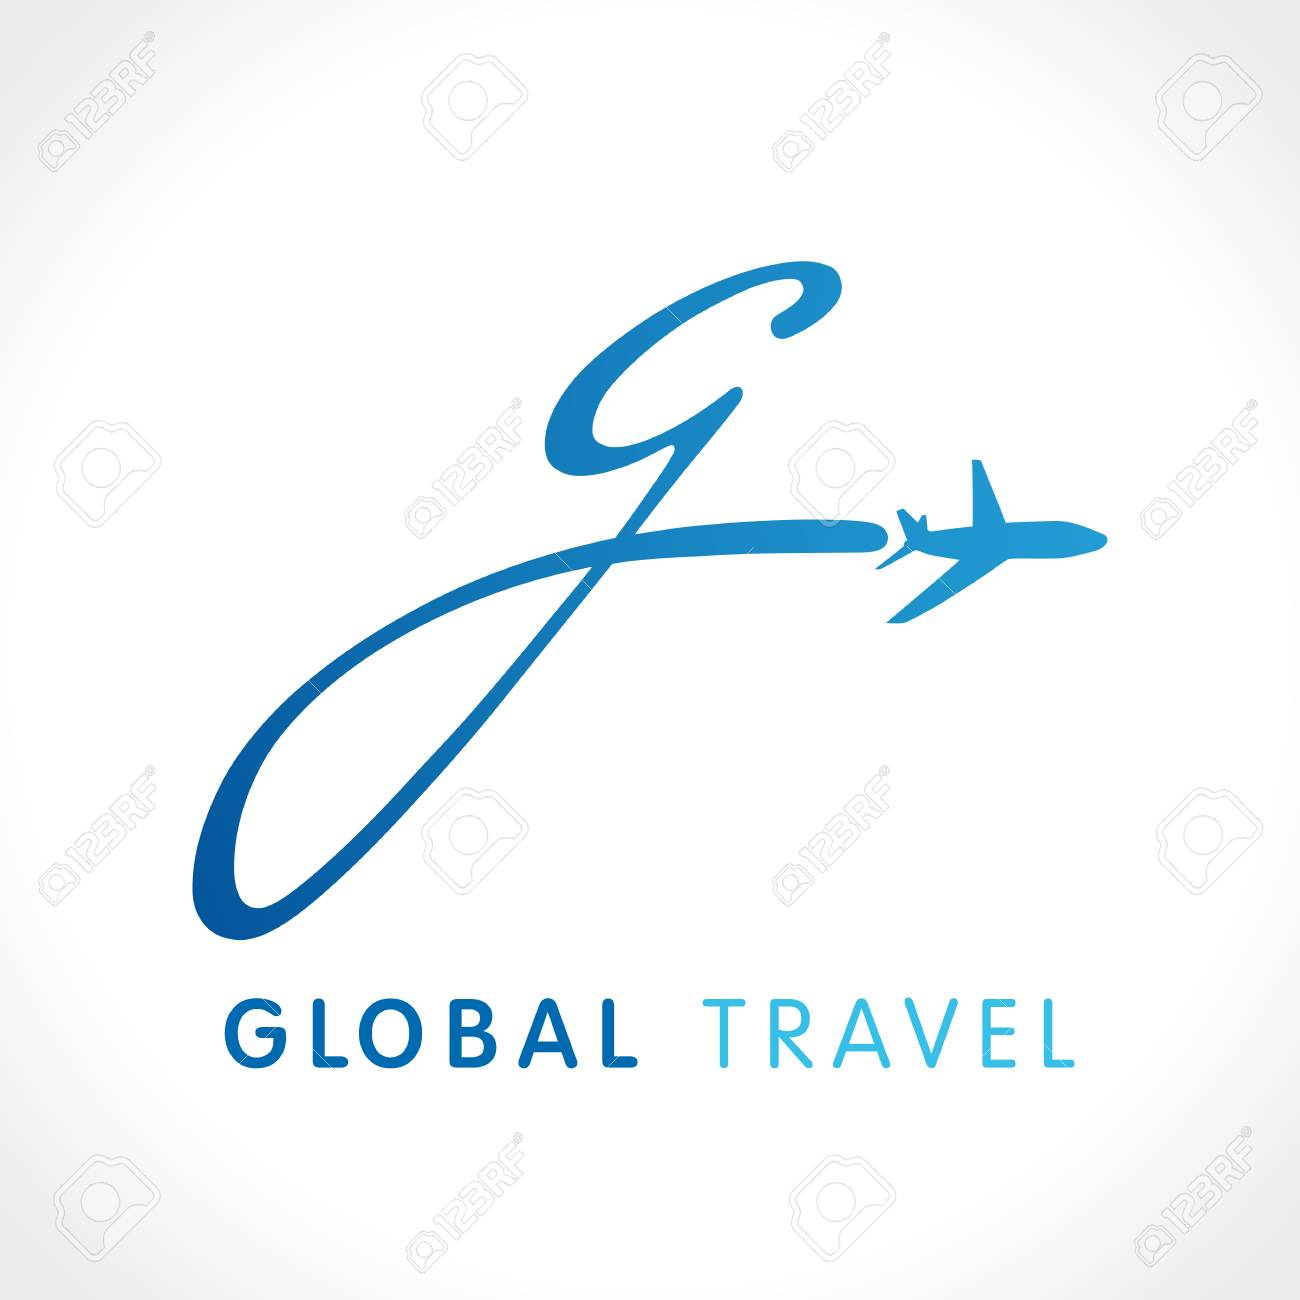 G Fly Travel Company Logo Airline Global Business Design With Letter